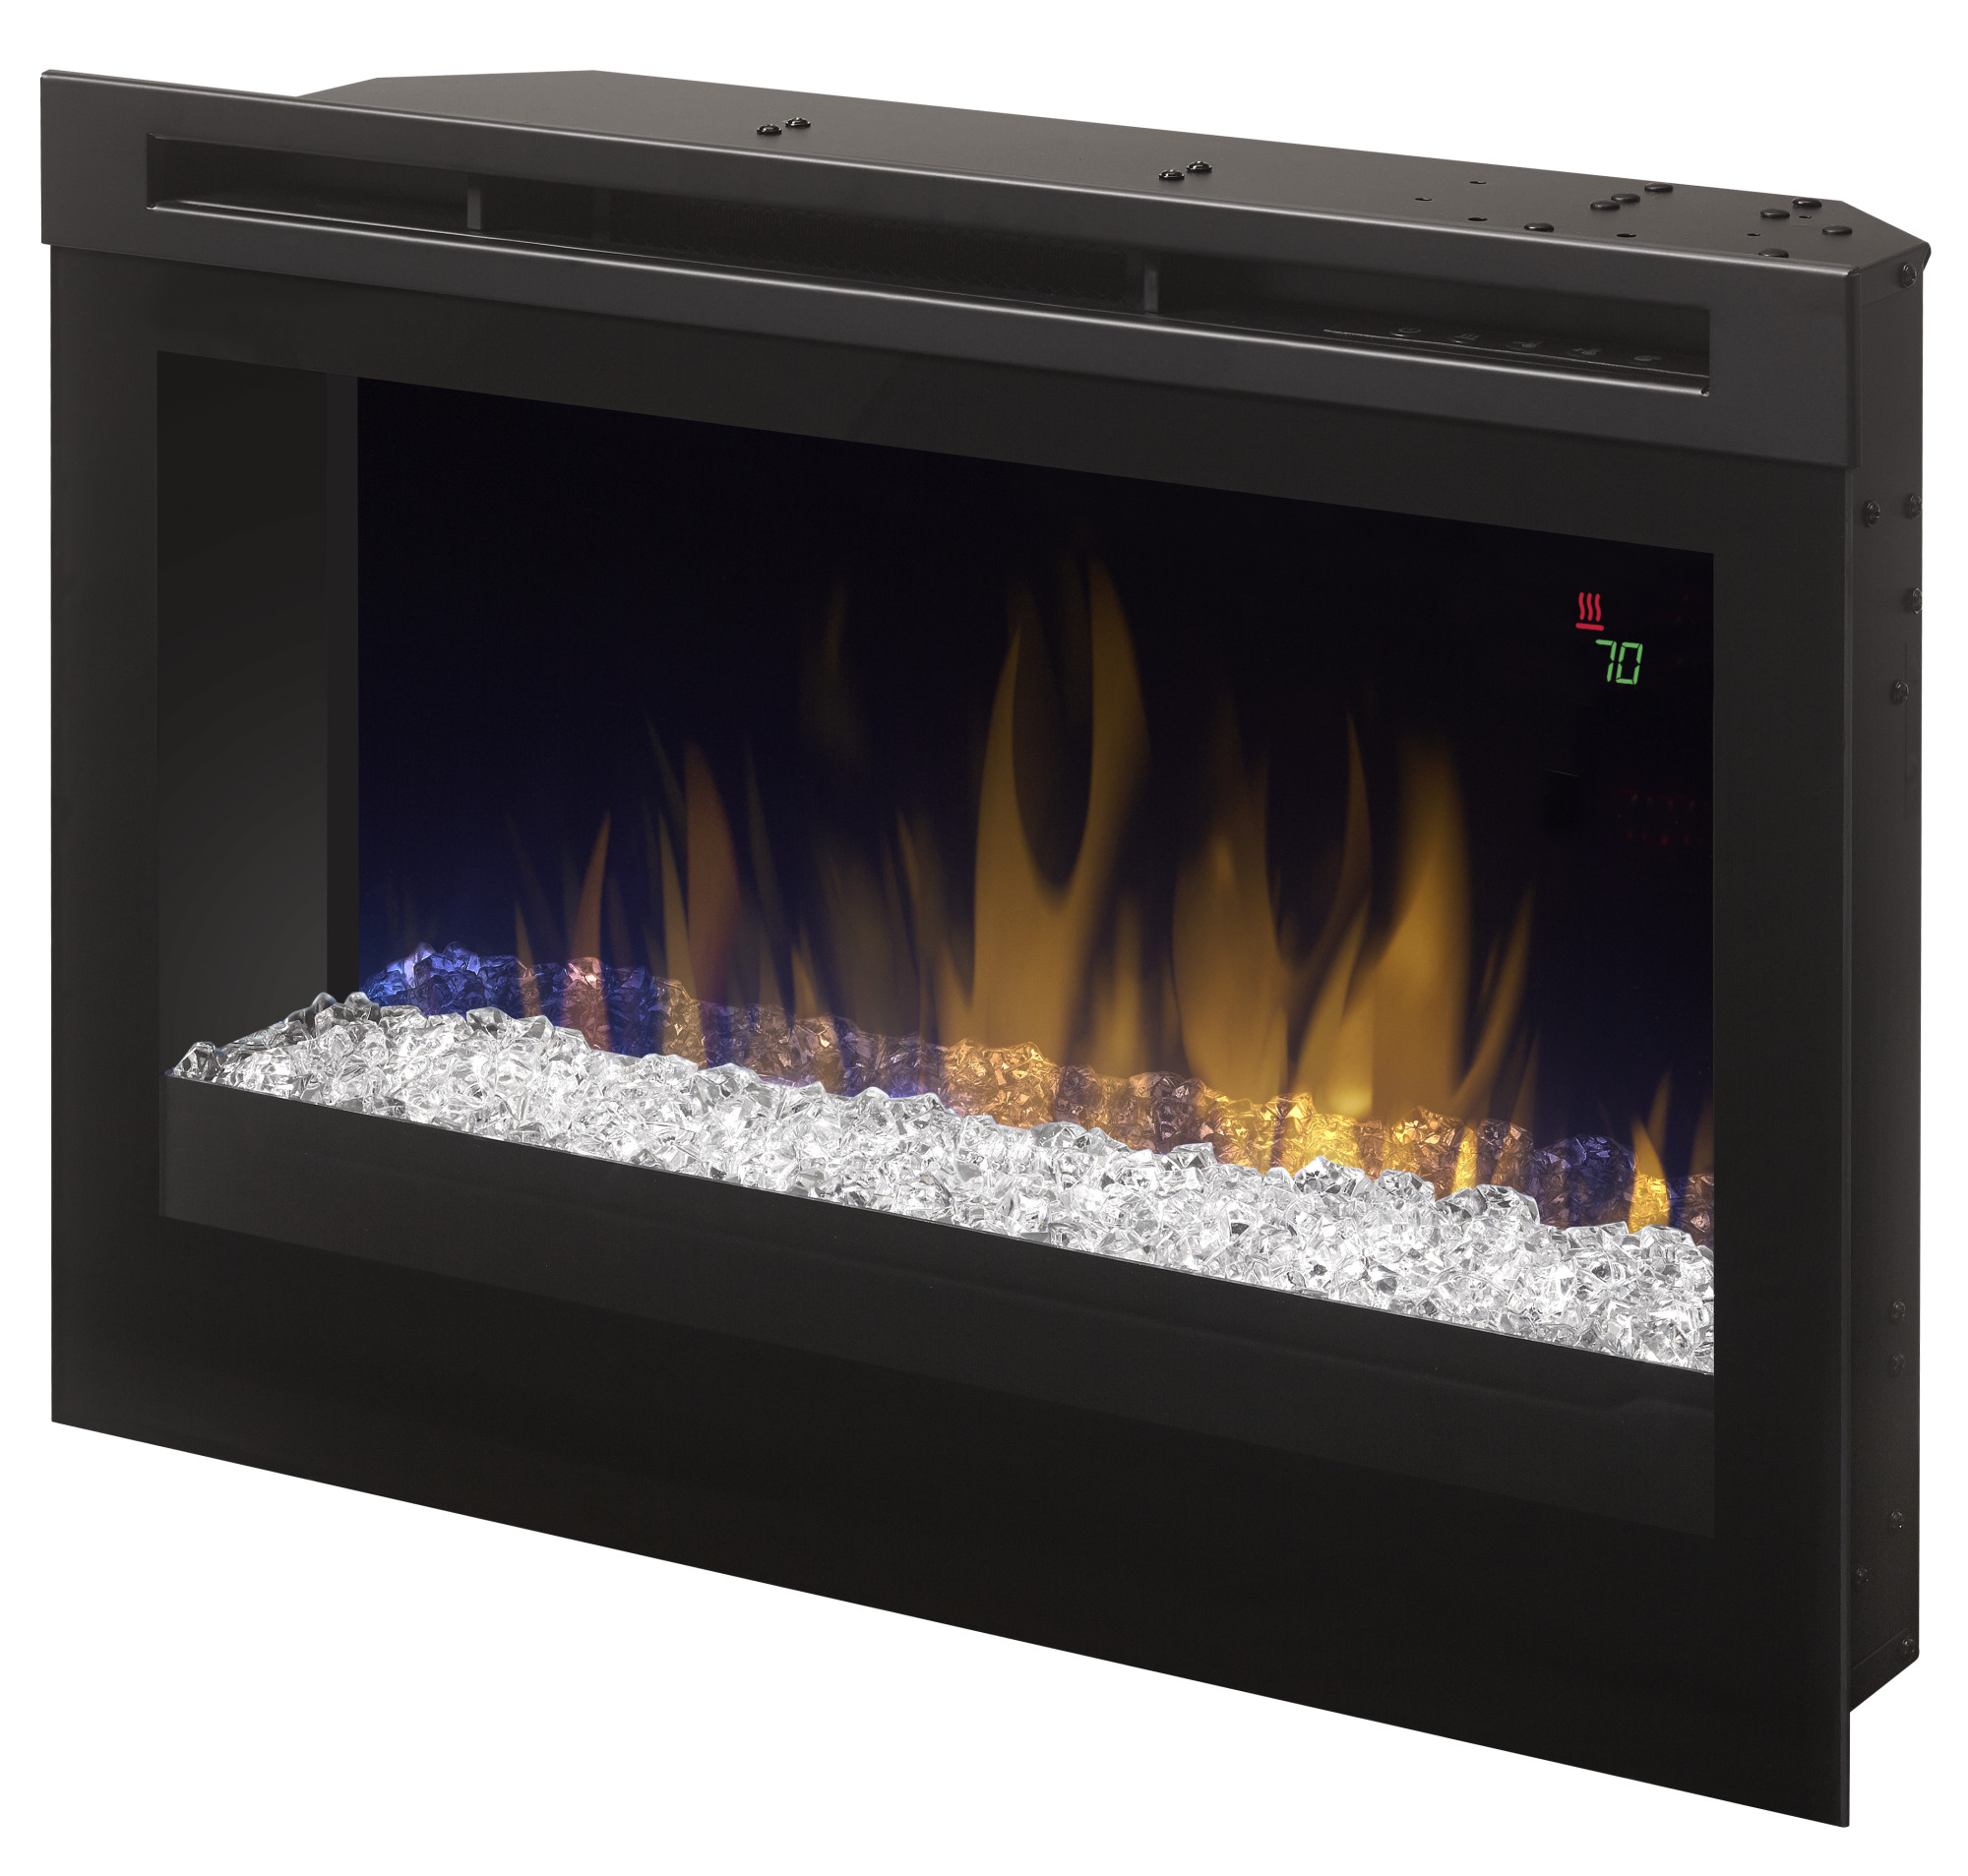 Dimplex DFR2551G 1500 Watt 25 Inch Wide Built-In Vent Free Electric Fireplace wi